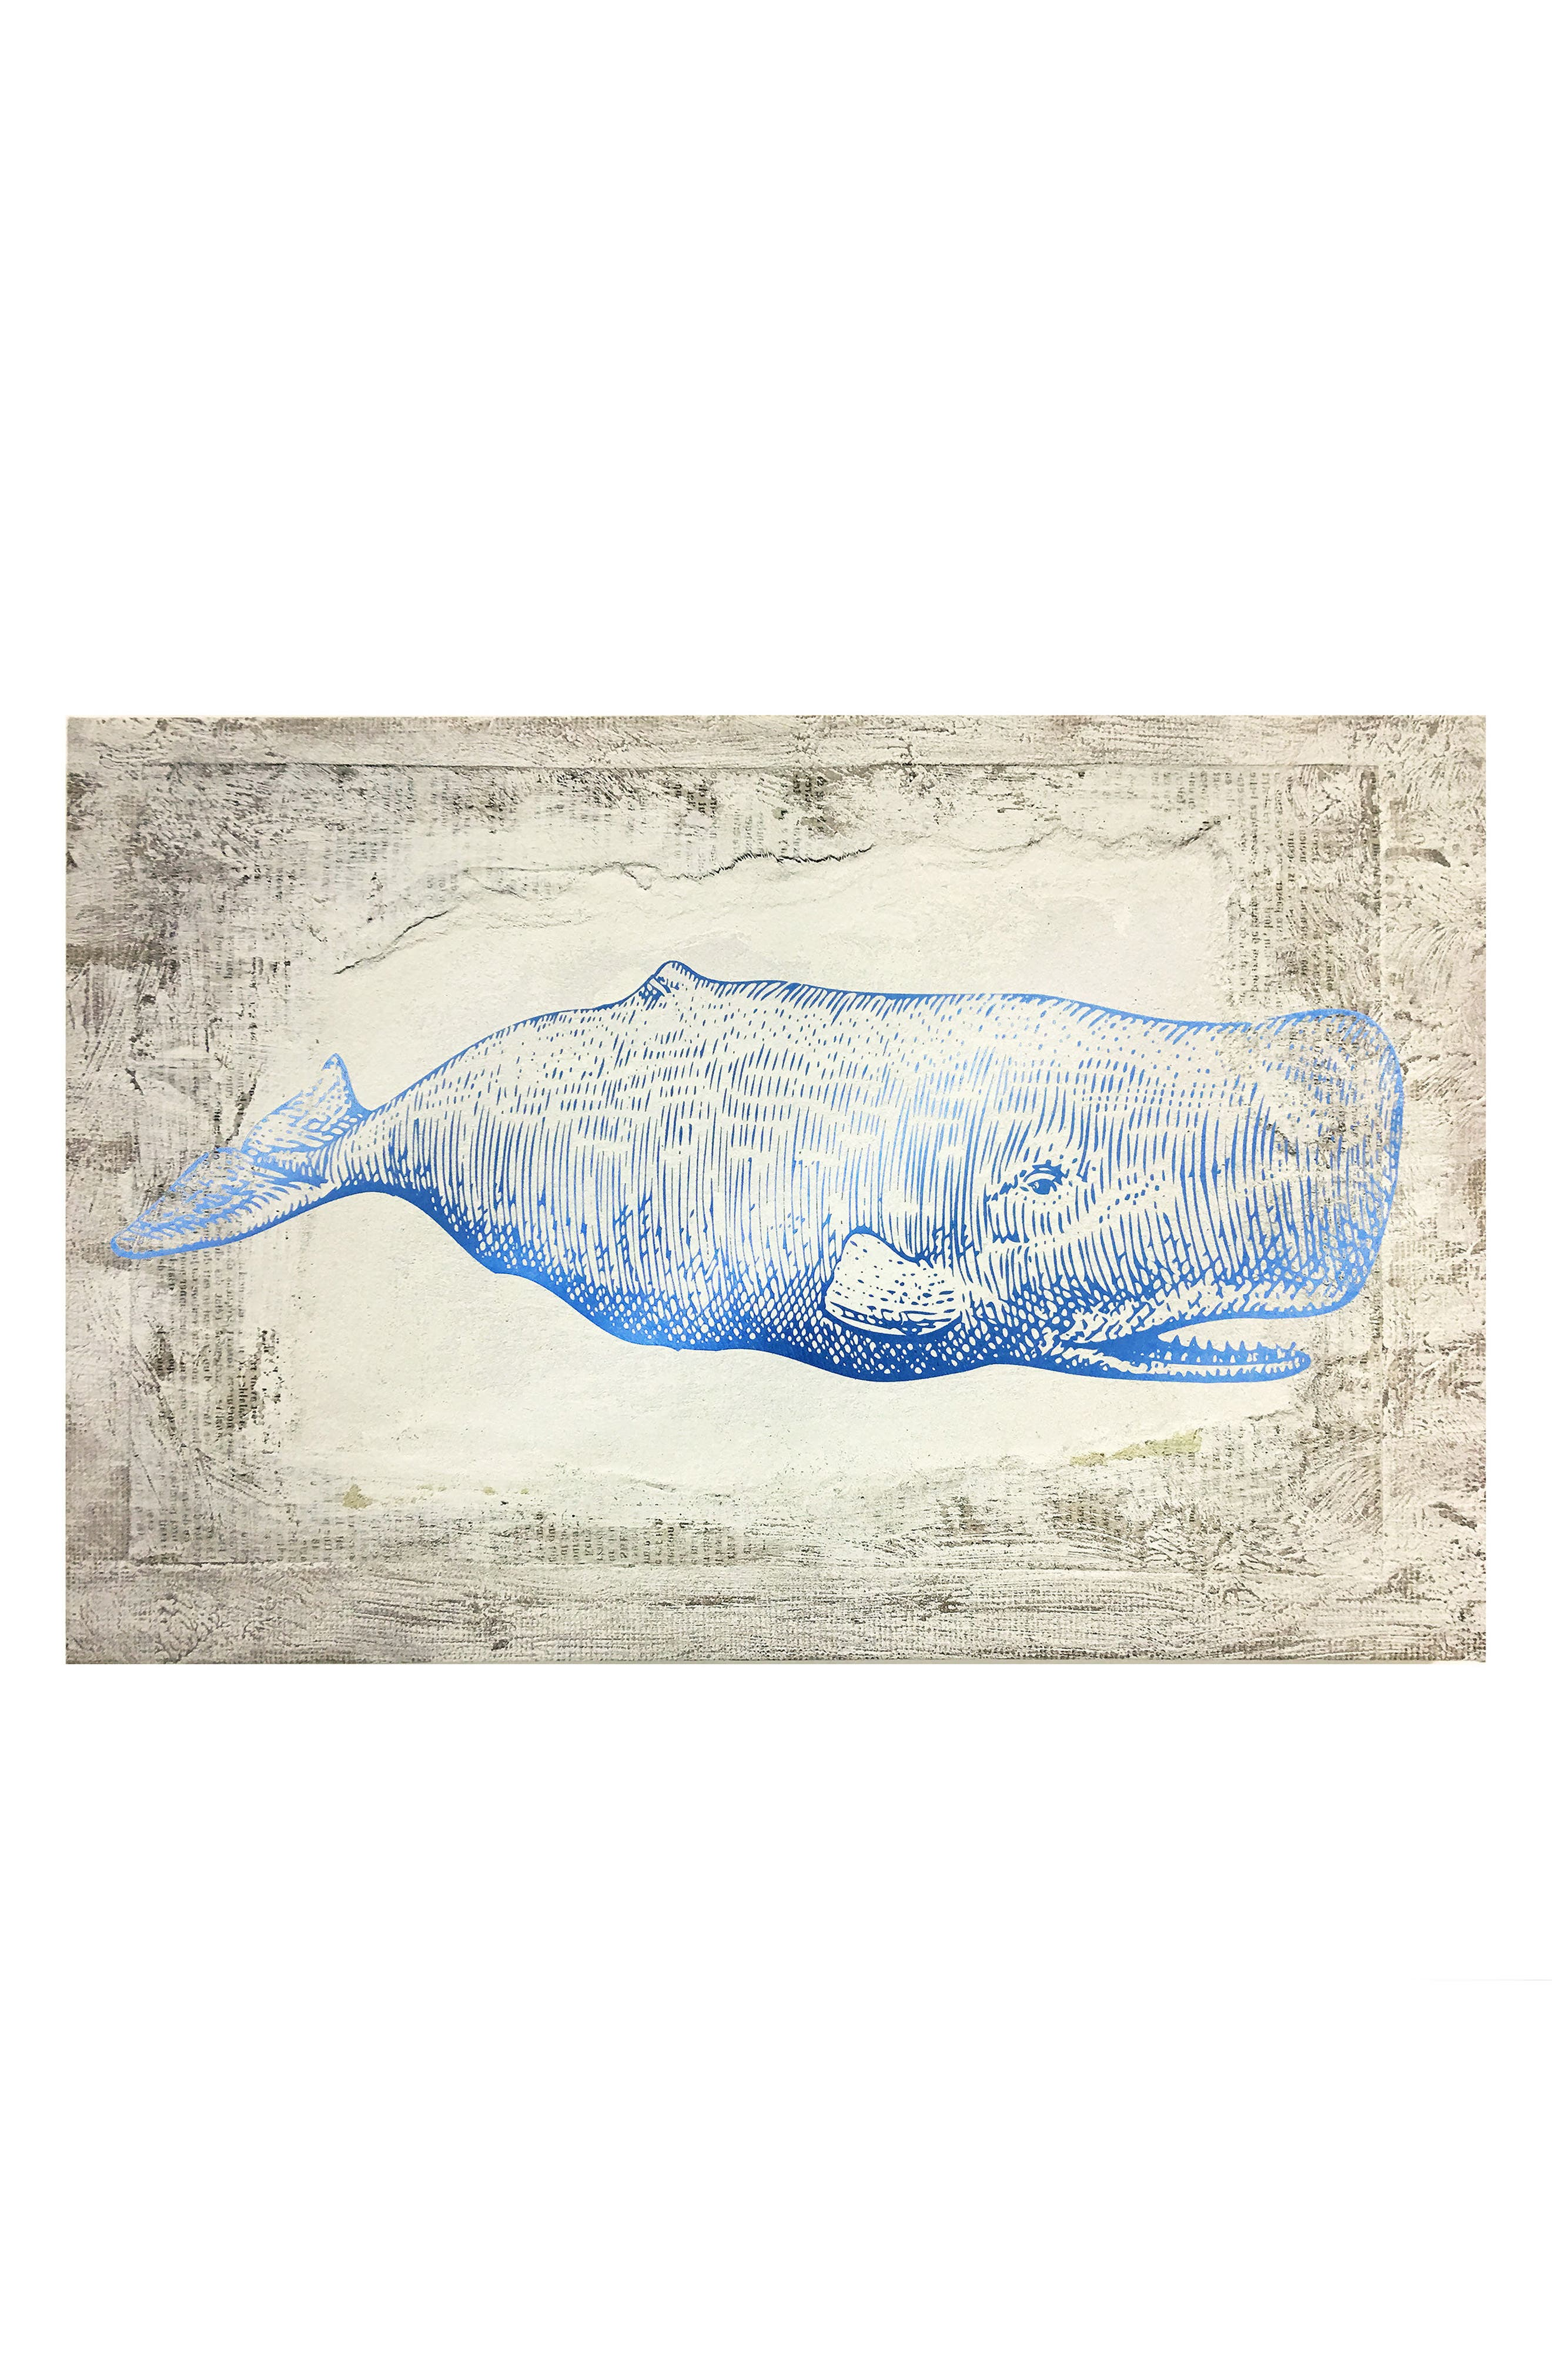 Alternate Image 1 Selected - Wynwood Blue Whale Canvas Wall Art